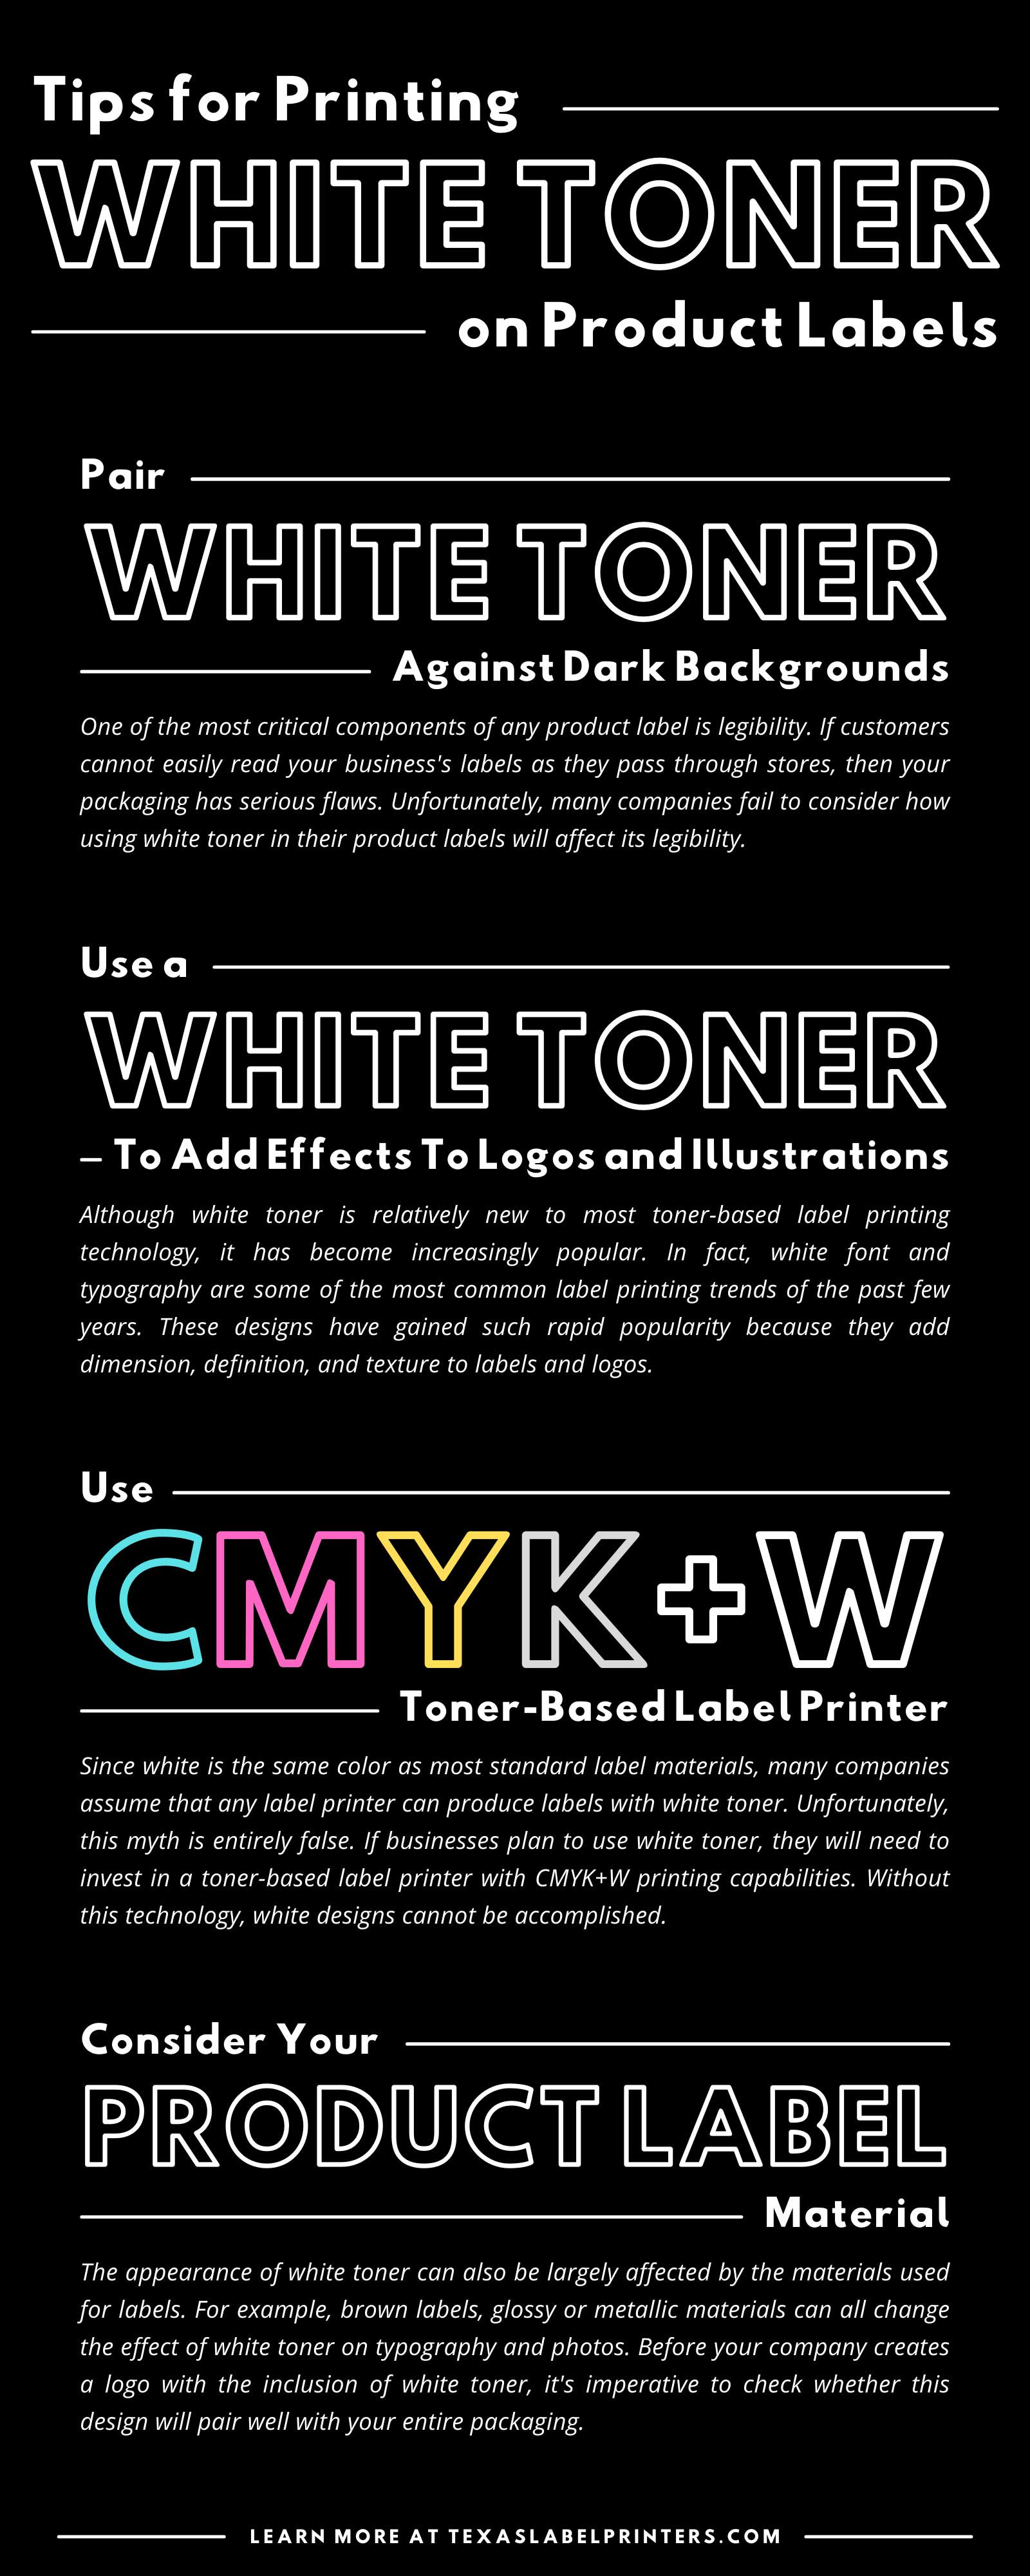 Tips for Printing White Toner on Product Labels Infographic